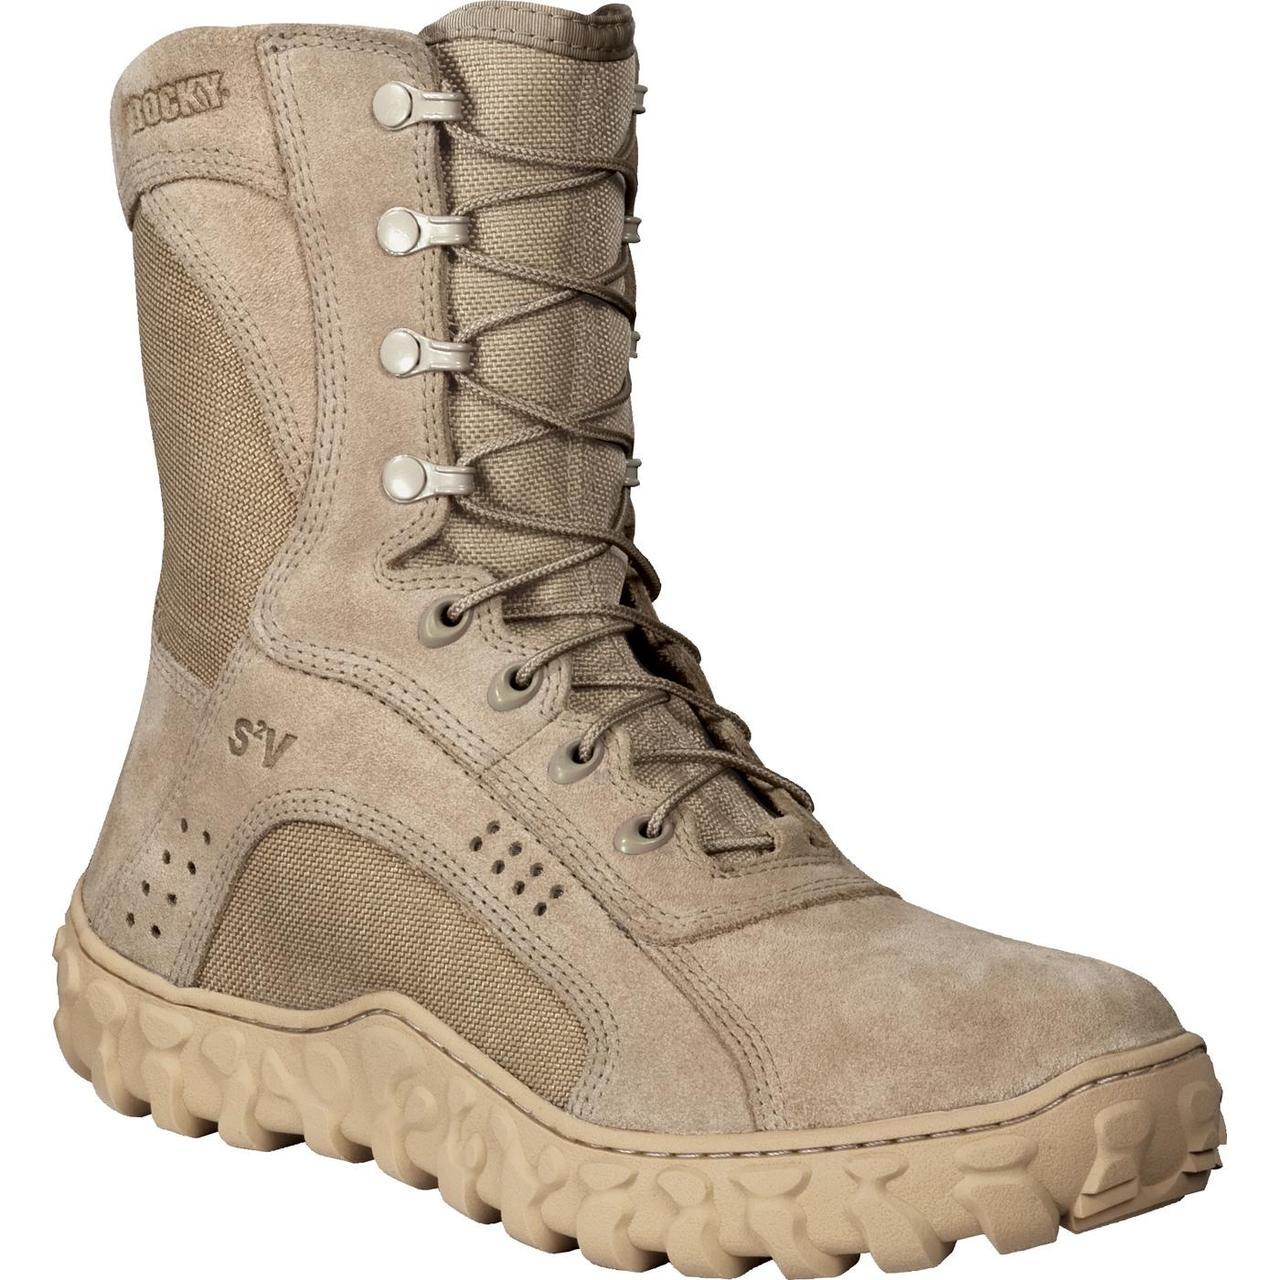 a9716bf4ee1 Rocky C5C Boot Review AR 670-1 Compliant